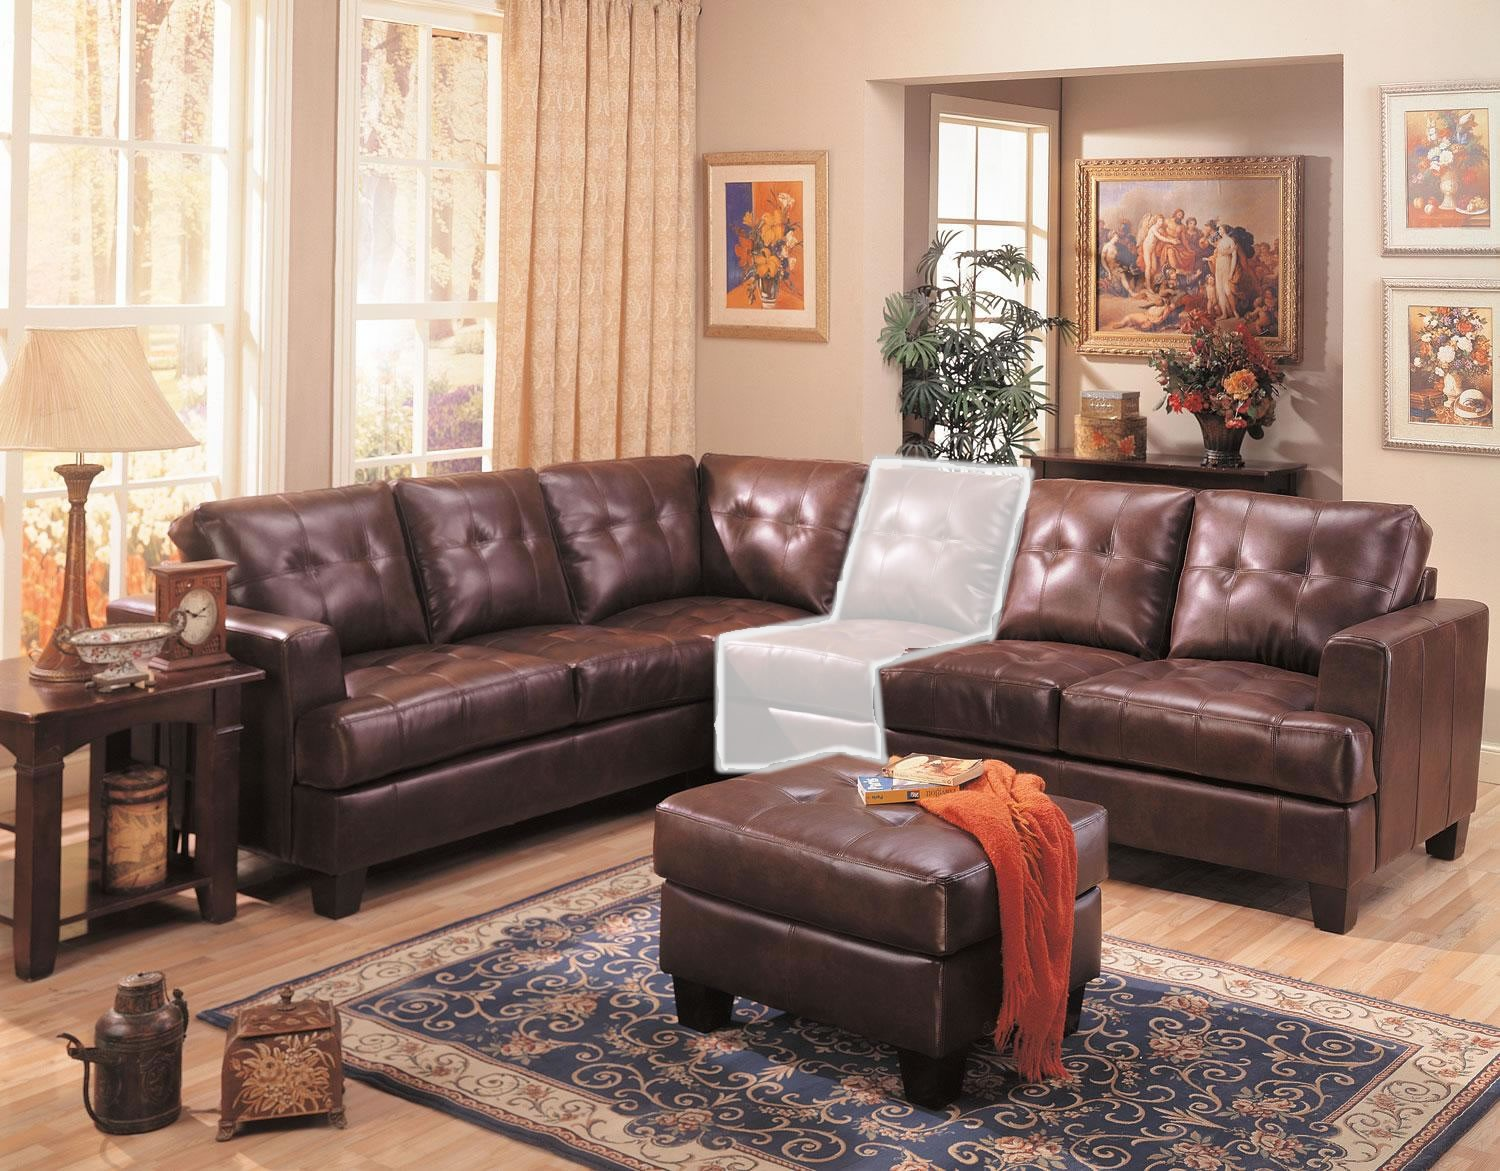 2 piece brown leather sofa mah jong modular preis samuel 3 sectional from coaster